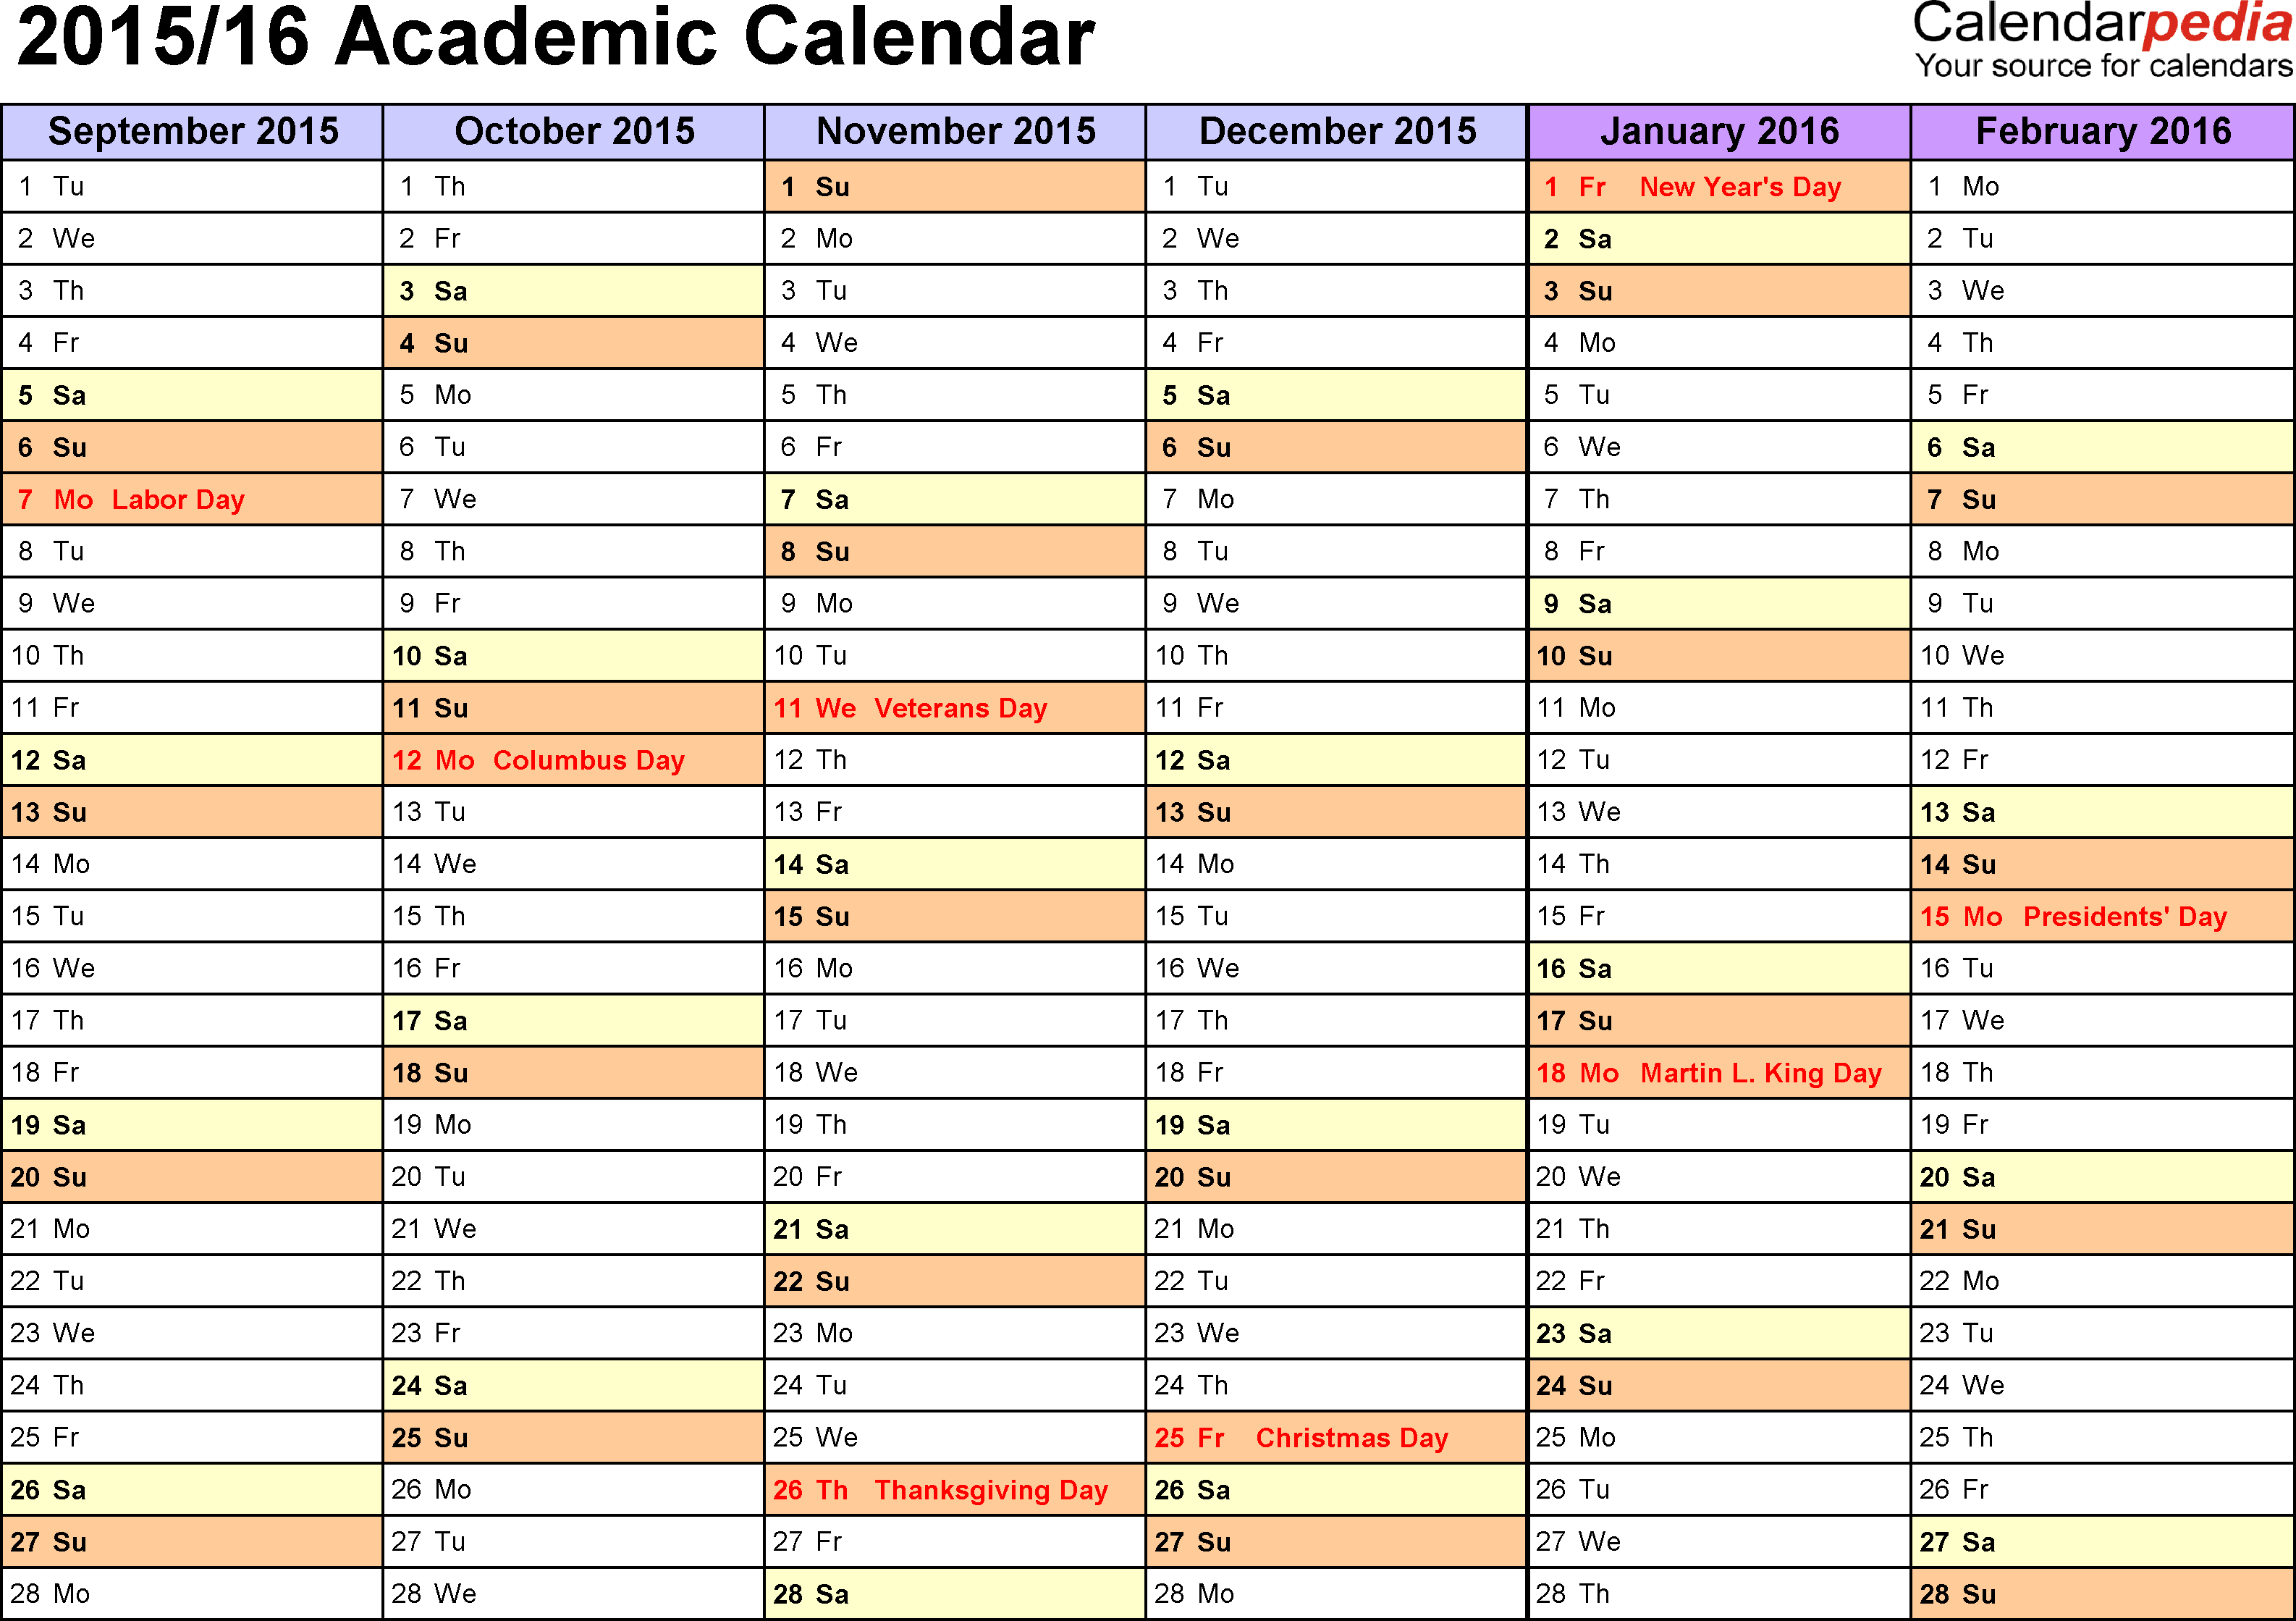 Academic calendars 2015/2016 as free printable Word templates